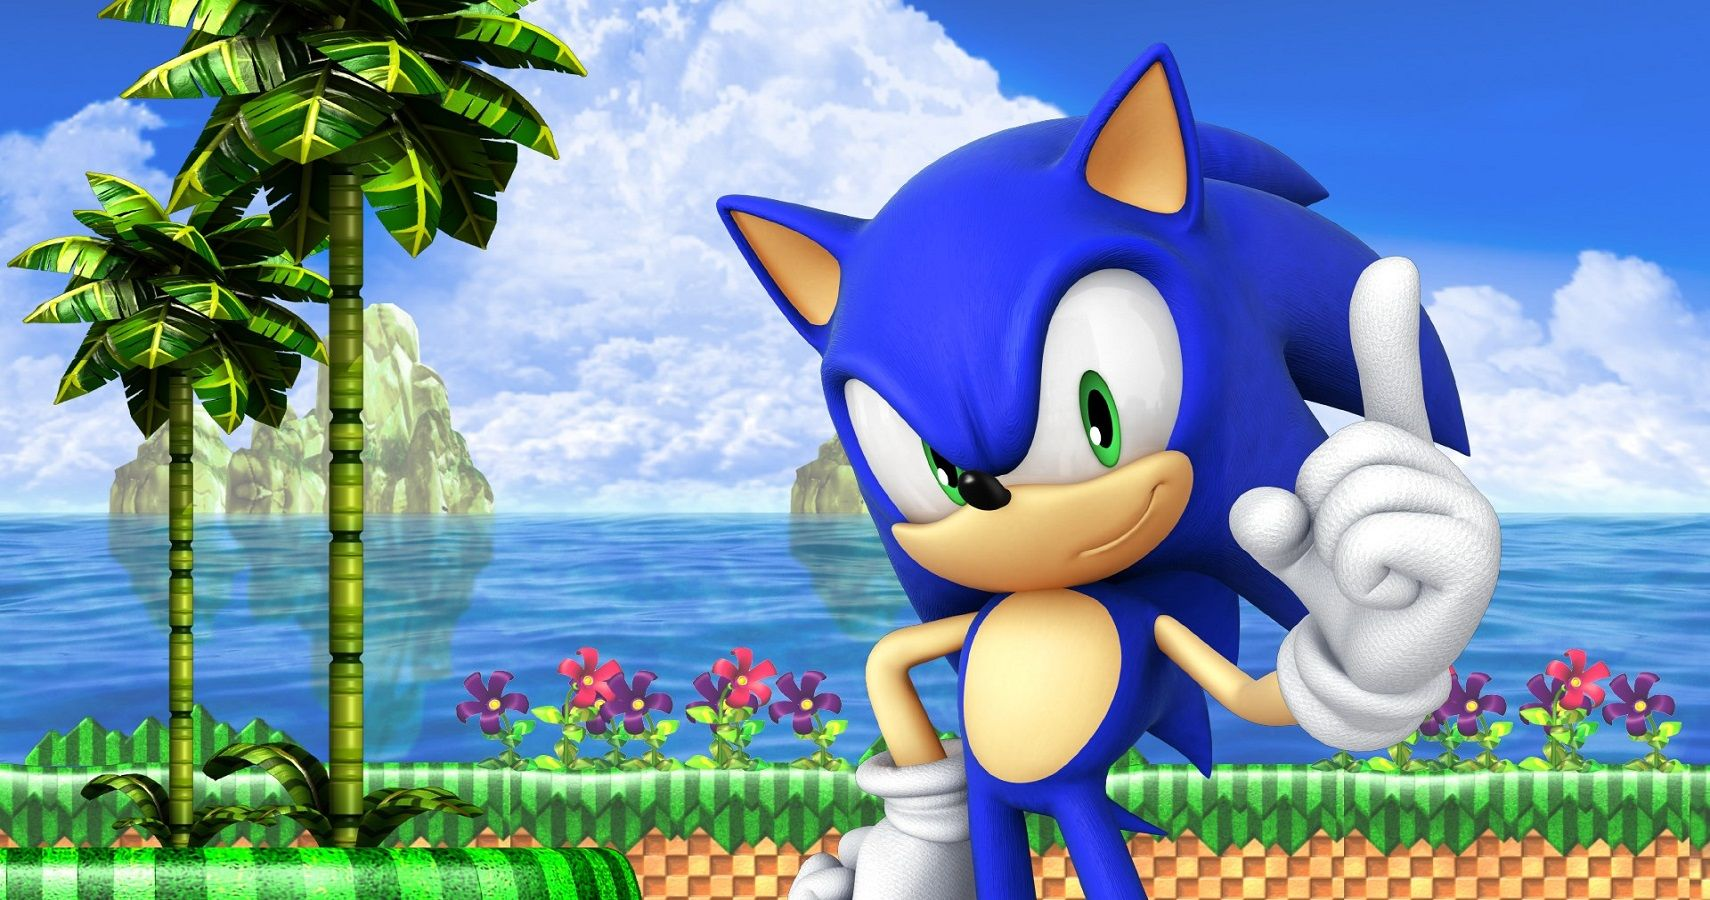 10 Best 2d Sonic Games Ranked Thegamer